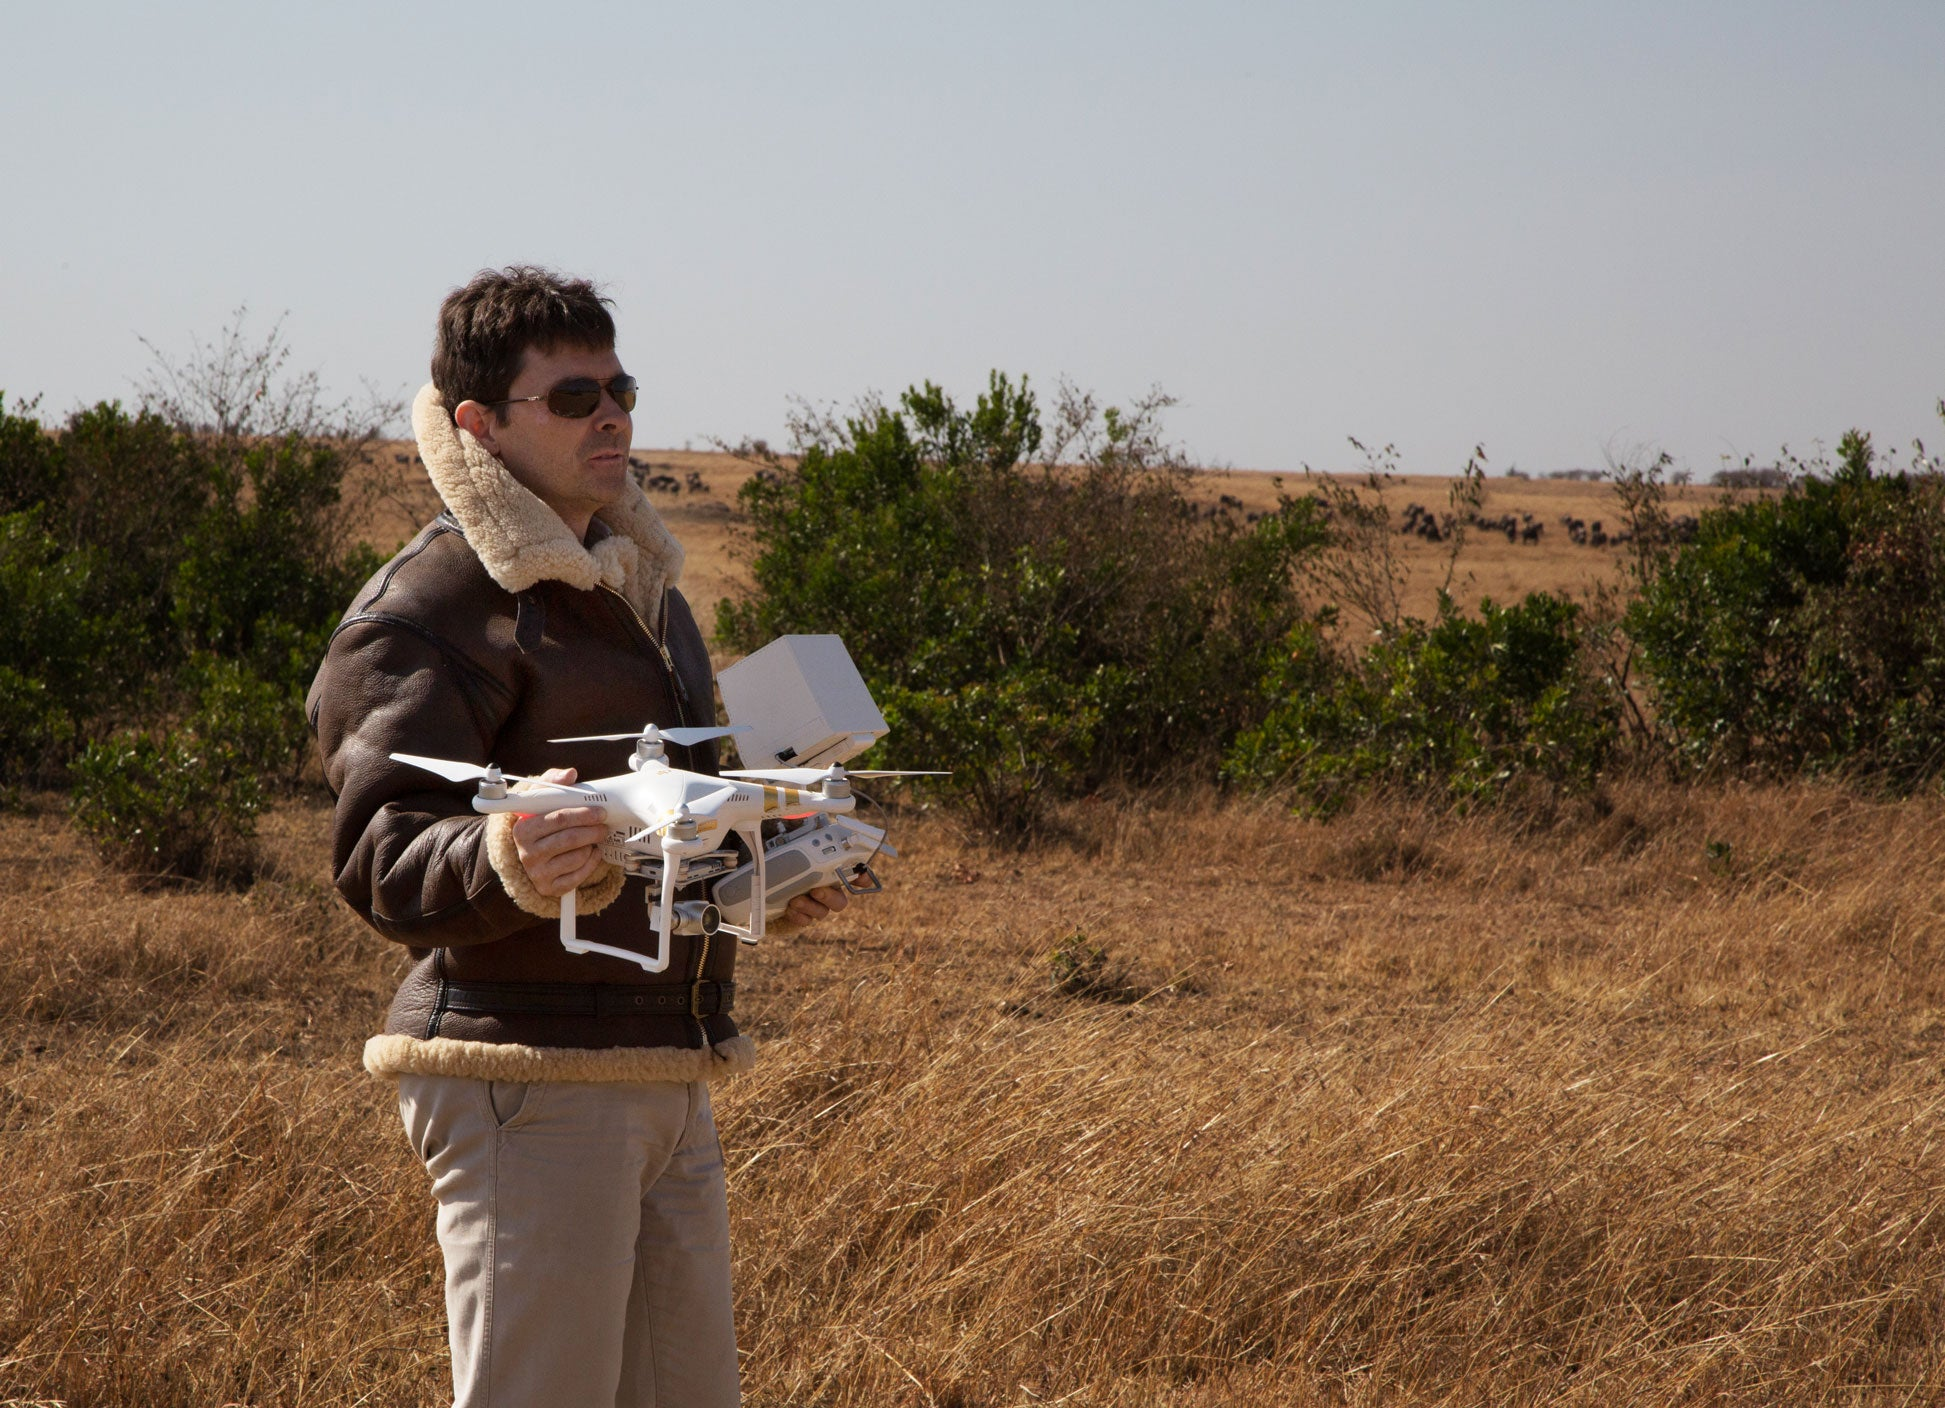 Matt Landis with his drone preparing to film the African wilderness.